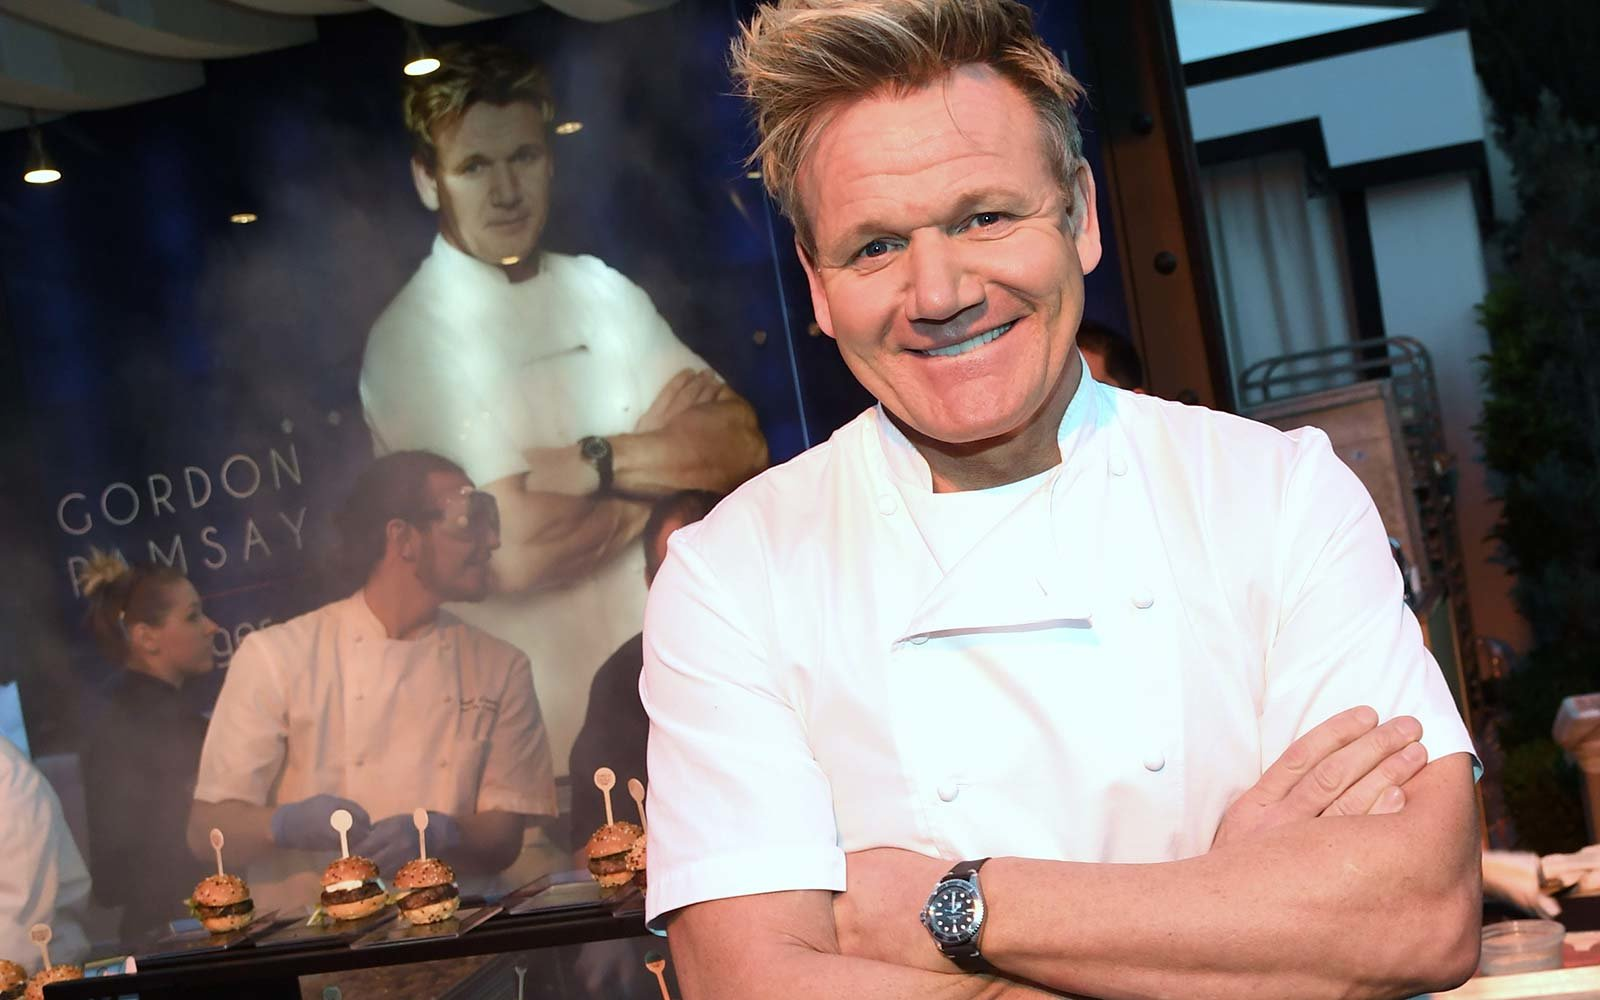 Chef Gordon Ramsay at the Gordon Ramsay Steak Las Vegas